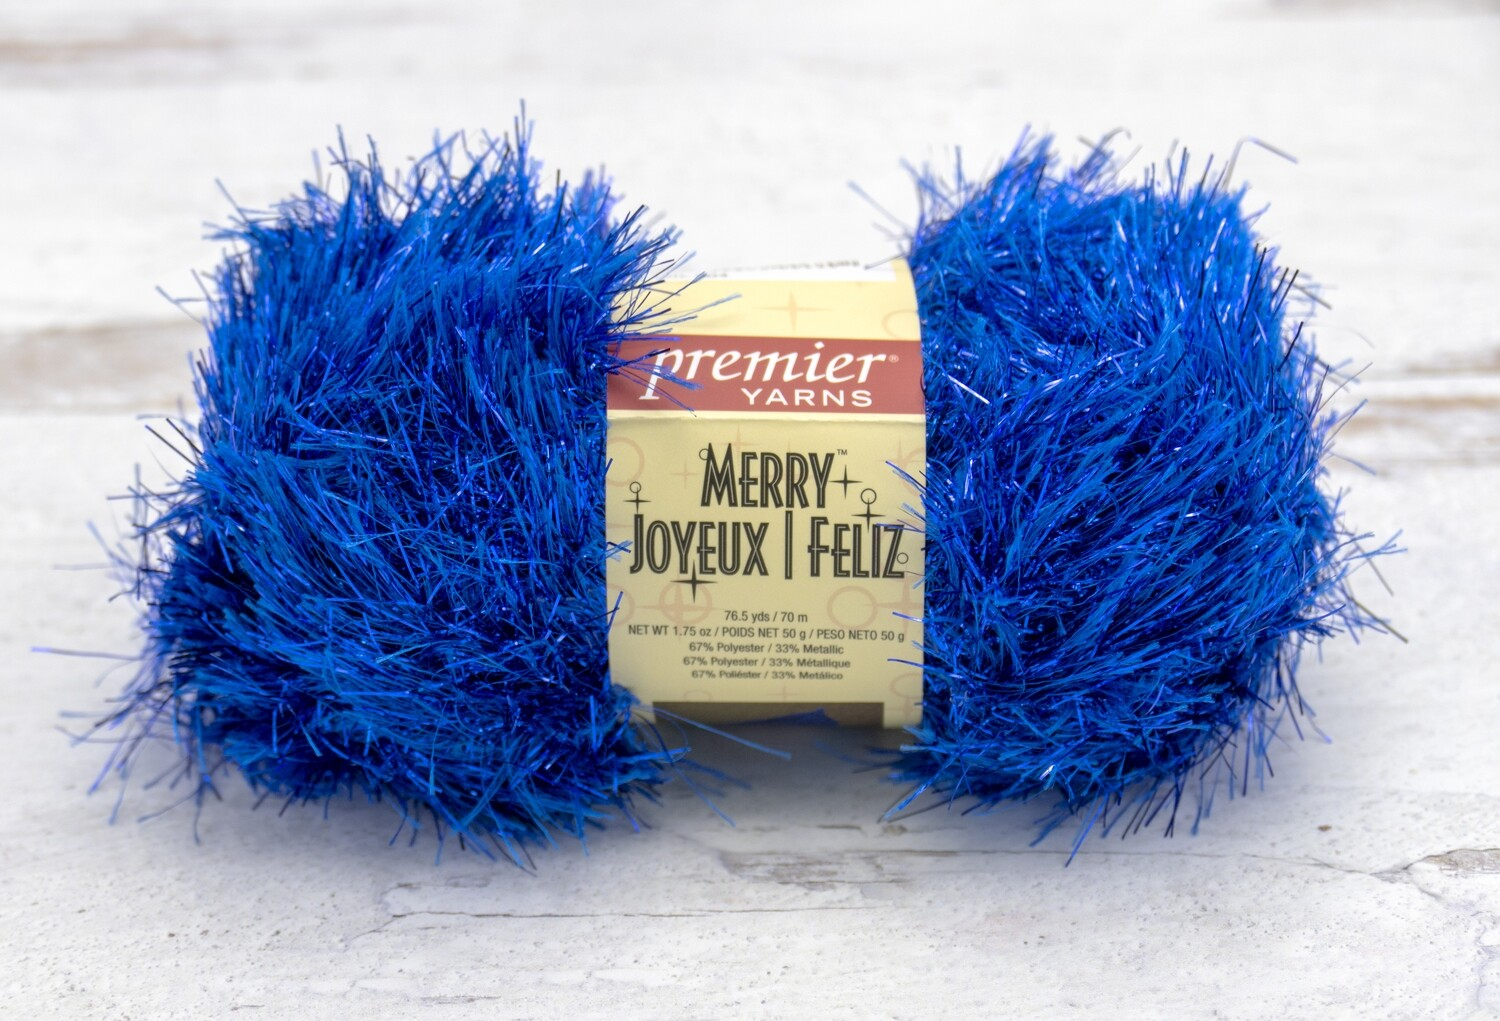 Premier Yarn Merry 76.5 Yards Twilight